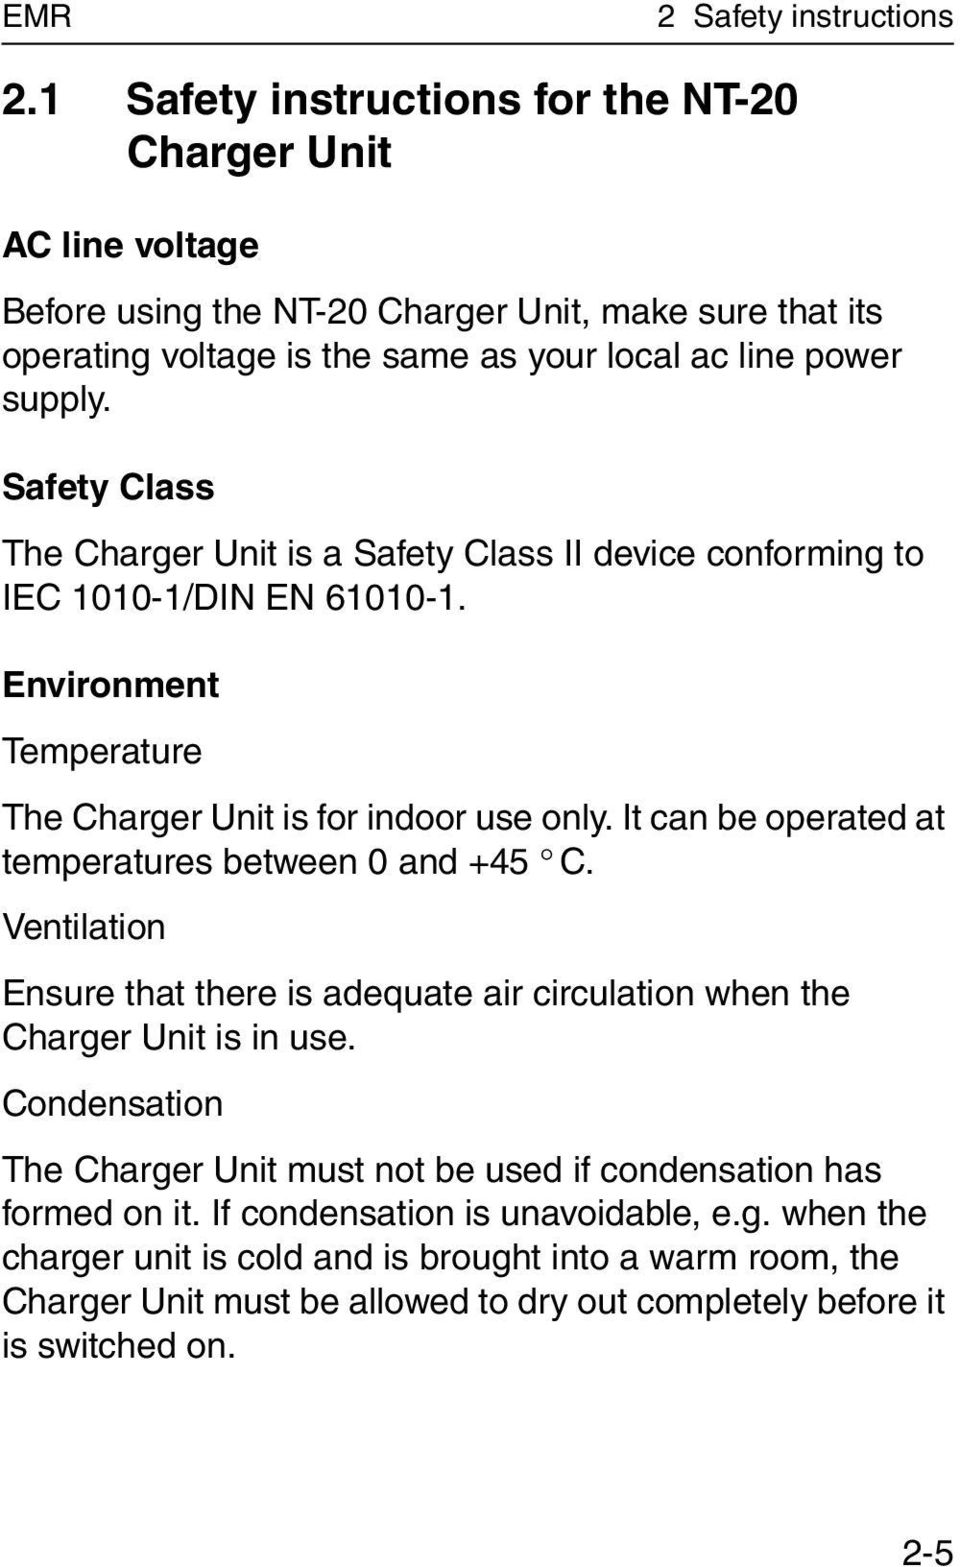 Safety Class The Charger Unit is a Safety Class II device conforming to IEC 1010-1/DIN EN 61010-1. Environment Temperature The Charger Unit is for indoor use only.